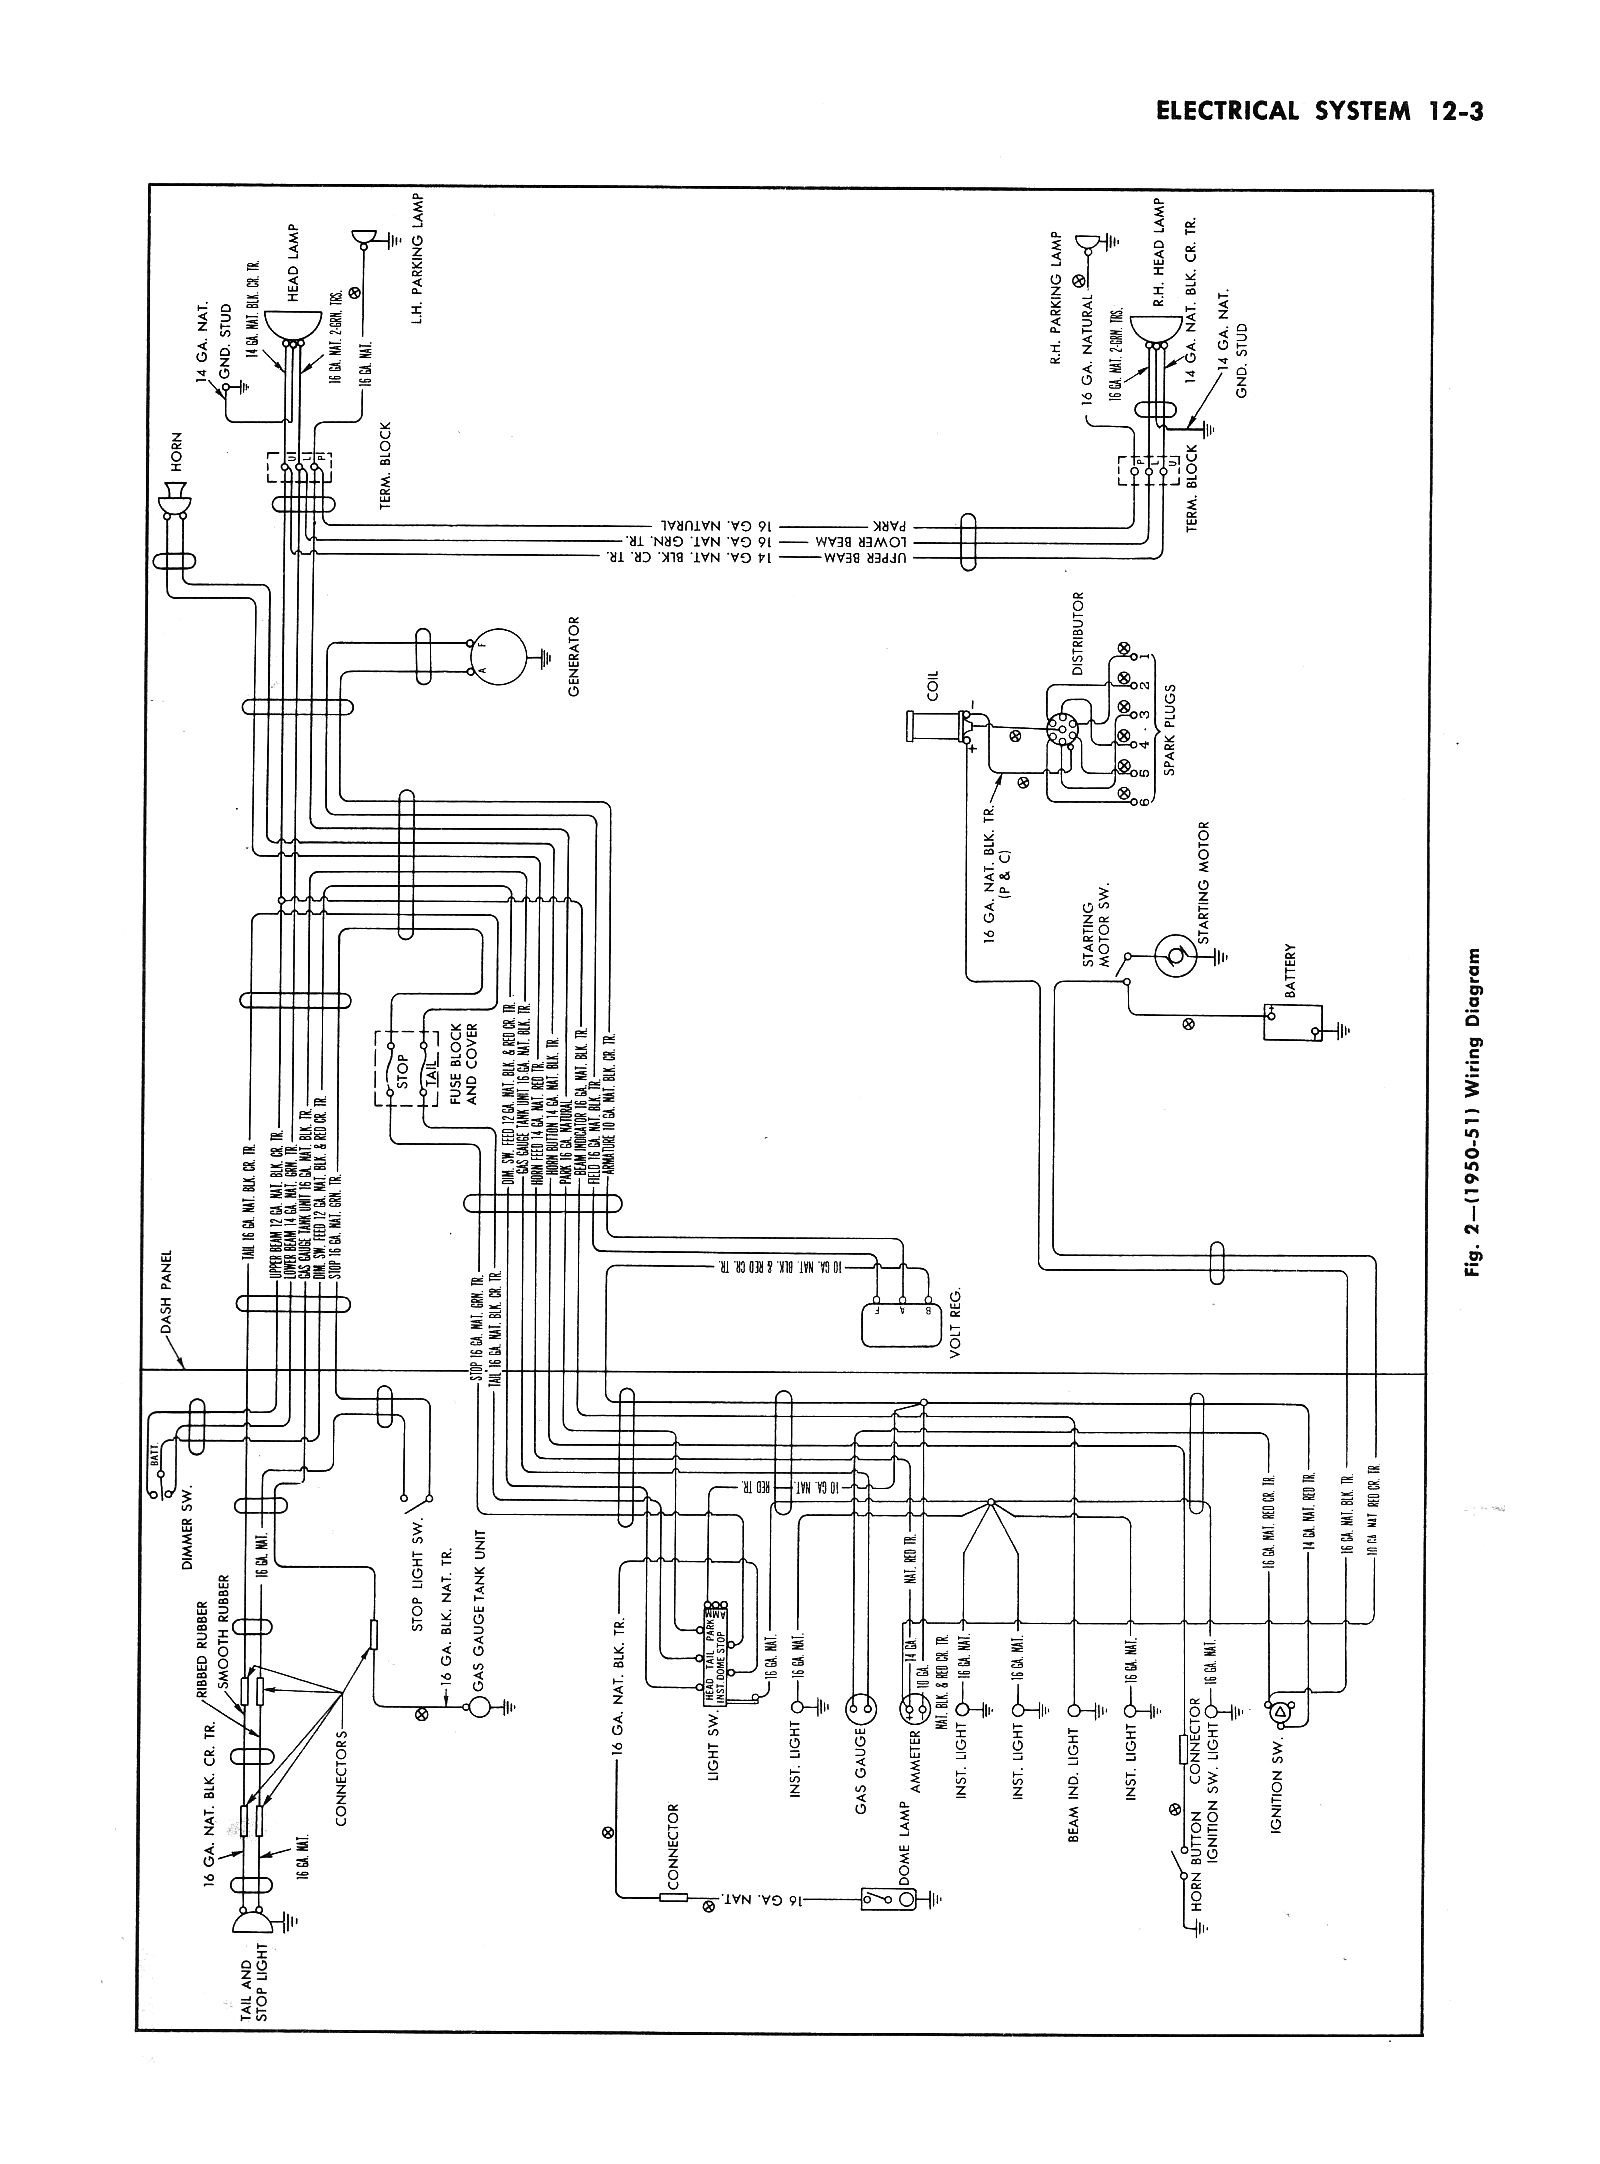 50ctsm1203 chevy wiring diagrams 66 Chevy Headlight Switch Wiring Diagram at couponss.co